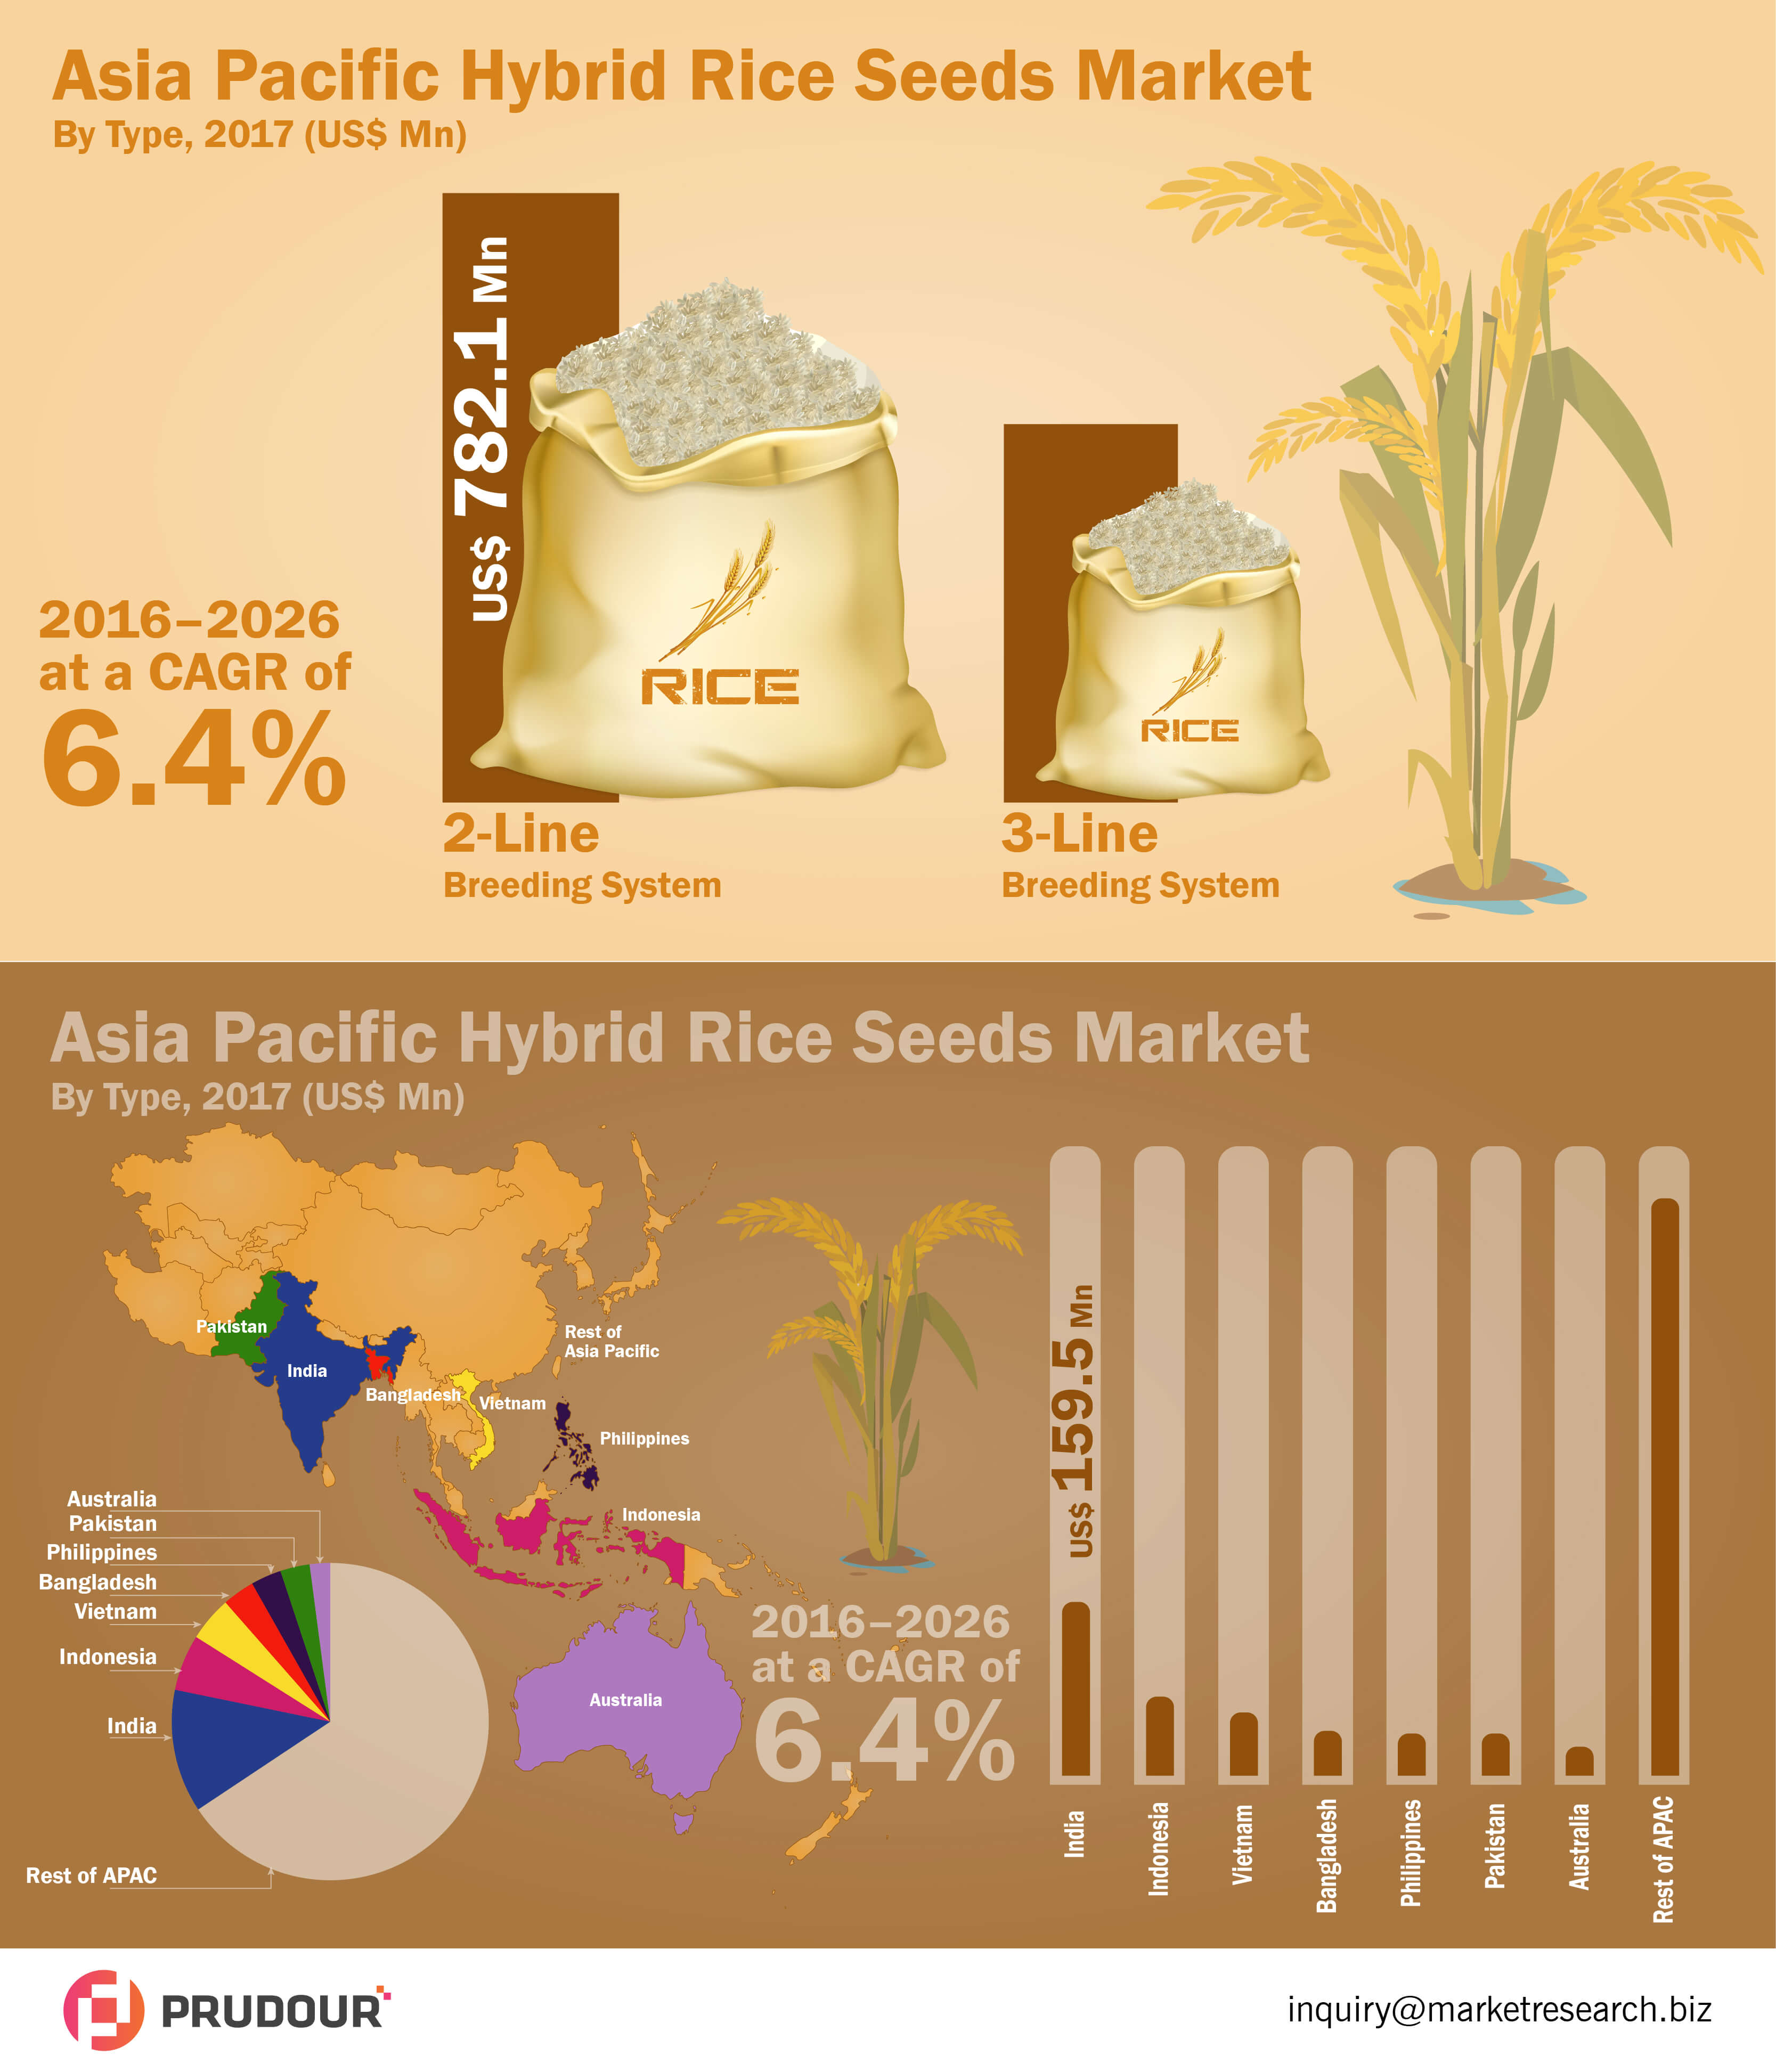 asia-pacific-hybrid-rice-seed-market-infographic